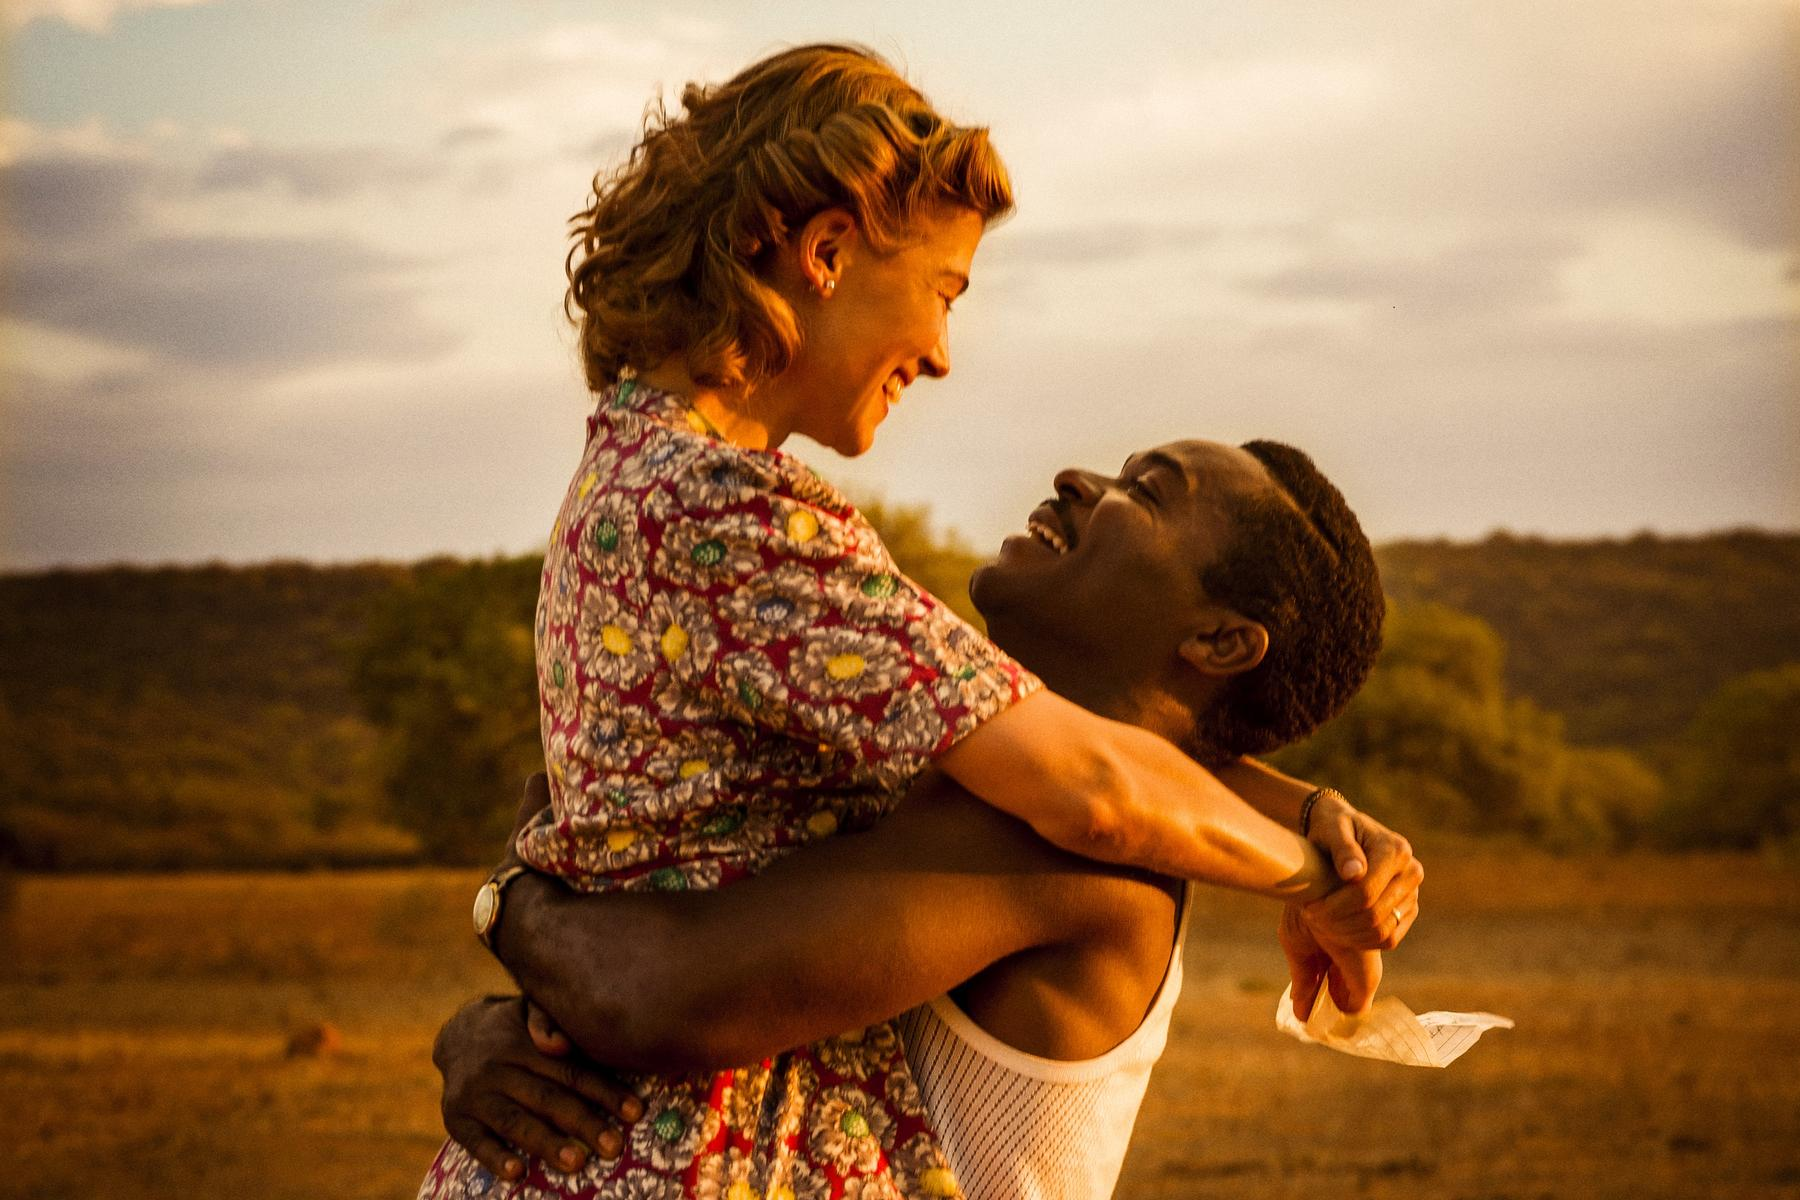 Sneak Review #75 – A United Kingdom